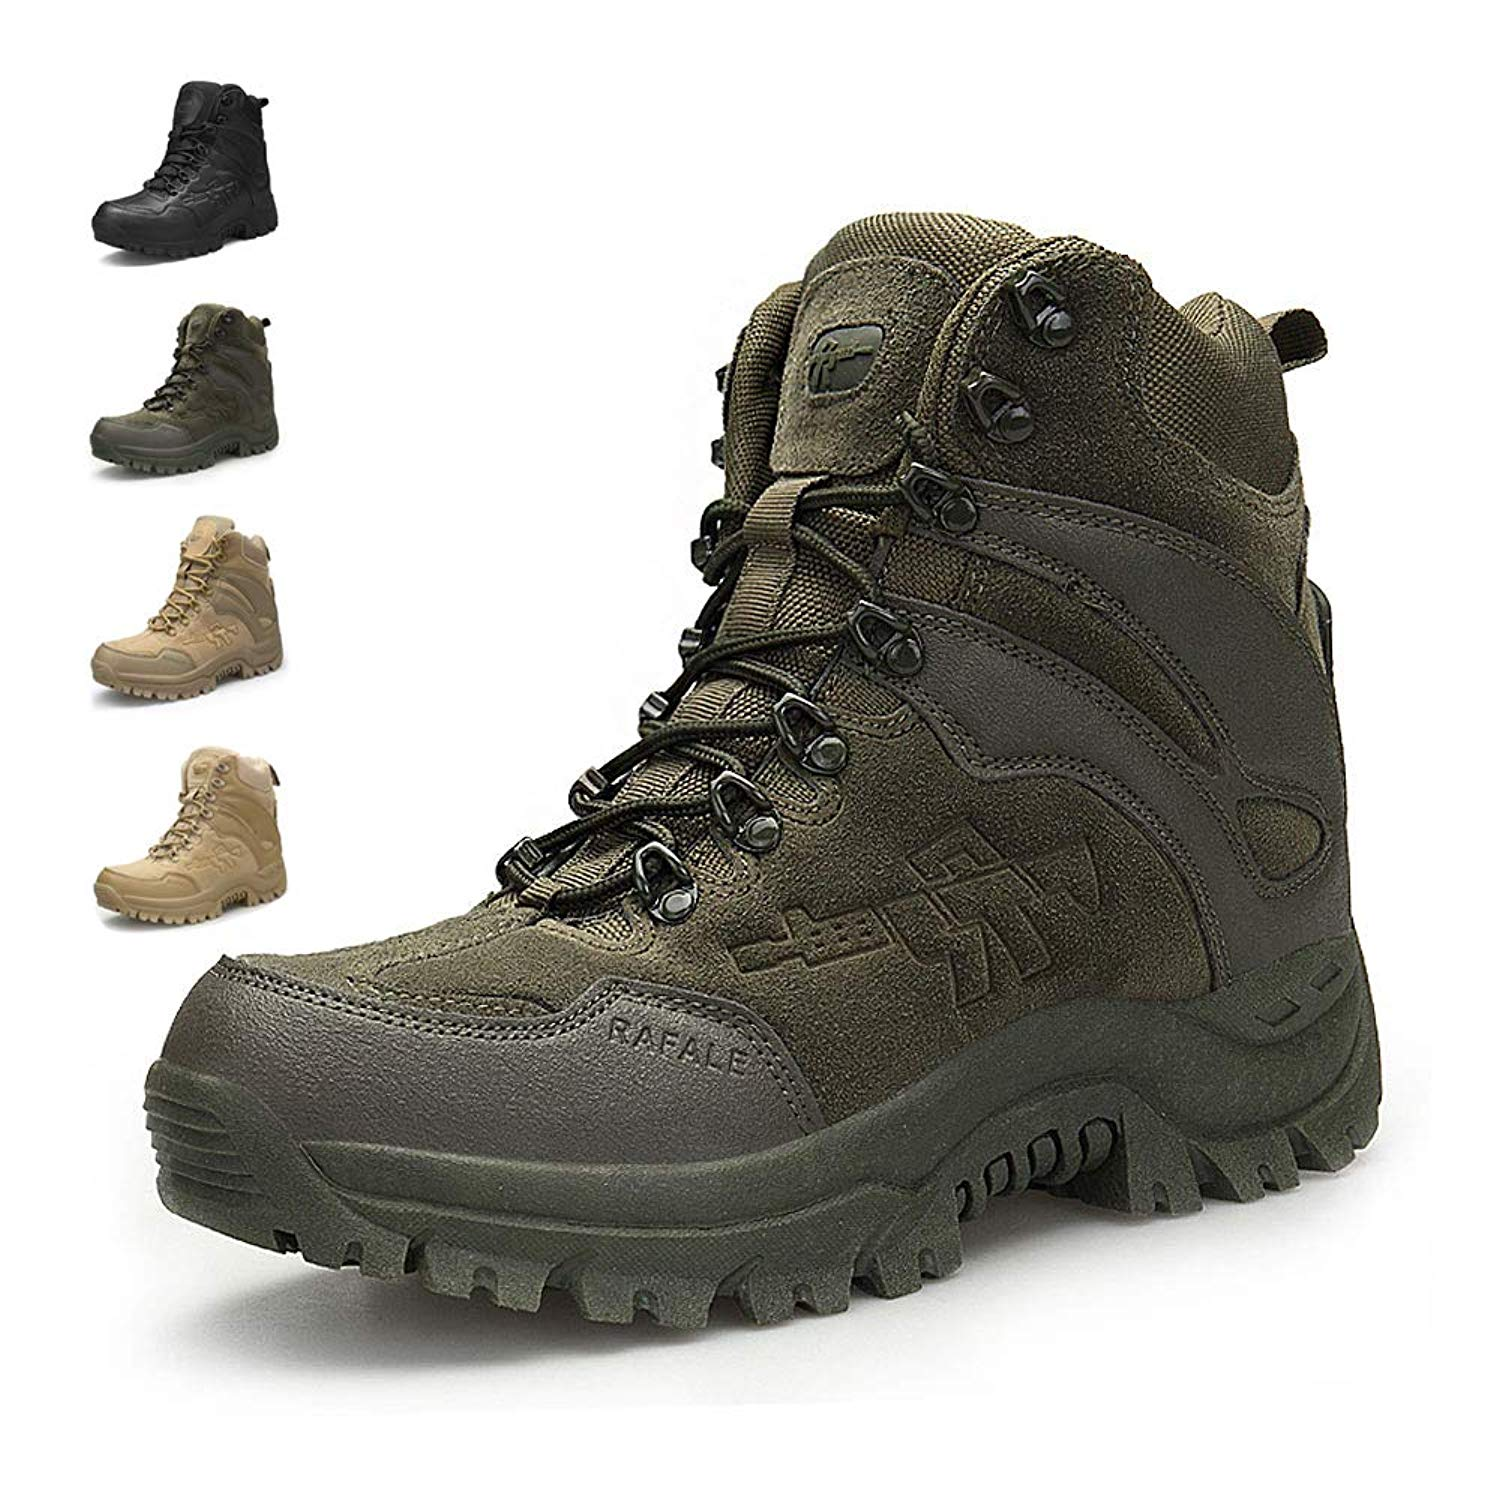 4b7285c1540 Cheap Composite Toe Military Boots, find Composite Toe Military ...